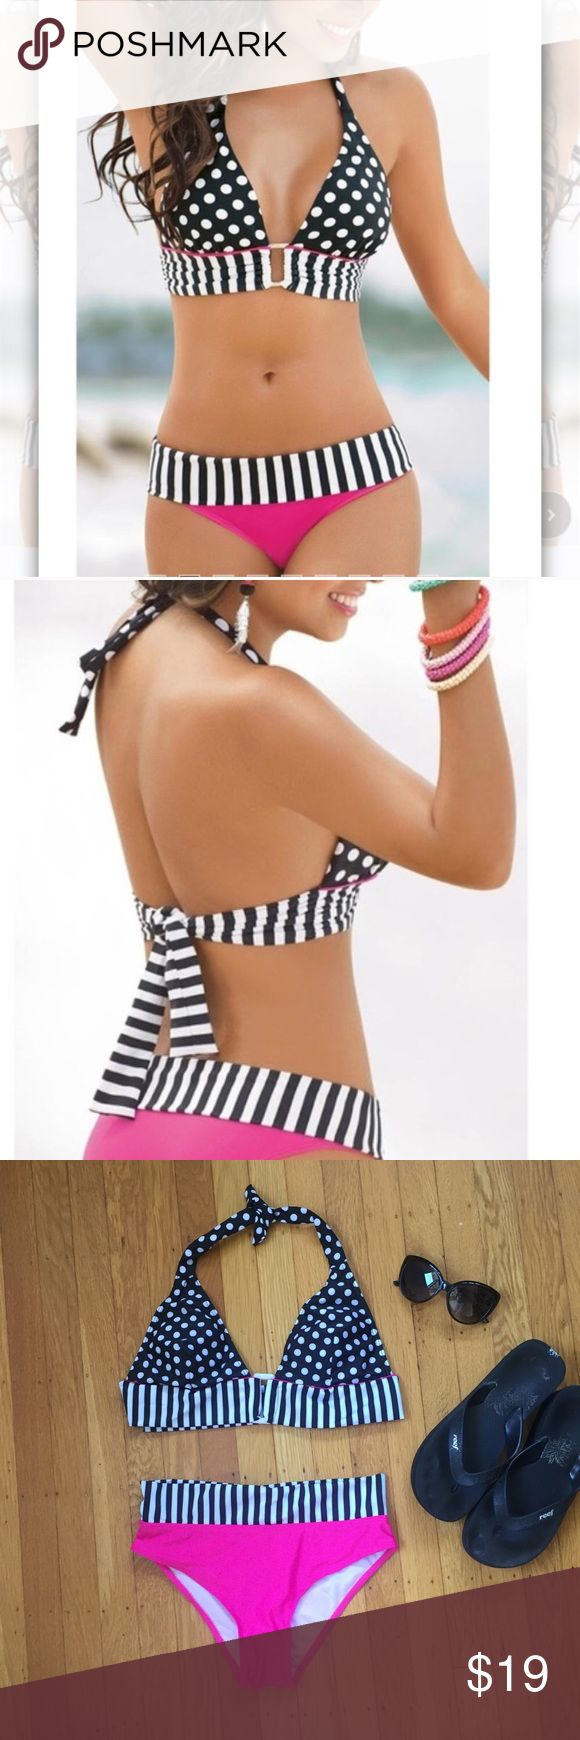 """Black, White and Hot Pink Swim Suit Black, White and Hot Pink Swim Suit.  So pretty.  Flat lay measurements. Between outer edge bra cup at bottom 14 3/4"""". Suit bottom hits approximately 21/2"""" below waist and is 14"""".  Hips 15"""".  A little stretch in fabric.  Actual suit for sale is shown in pic 3 & 4.  Model shows similar version suit in pic 1 & 2.  Label say size M but more like size XS.  Please check  measurements to get good fit.  Bra cup has padding.  So pretty. Swim Bikinis"""